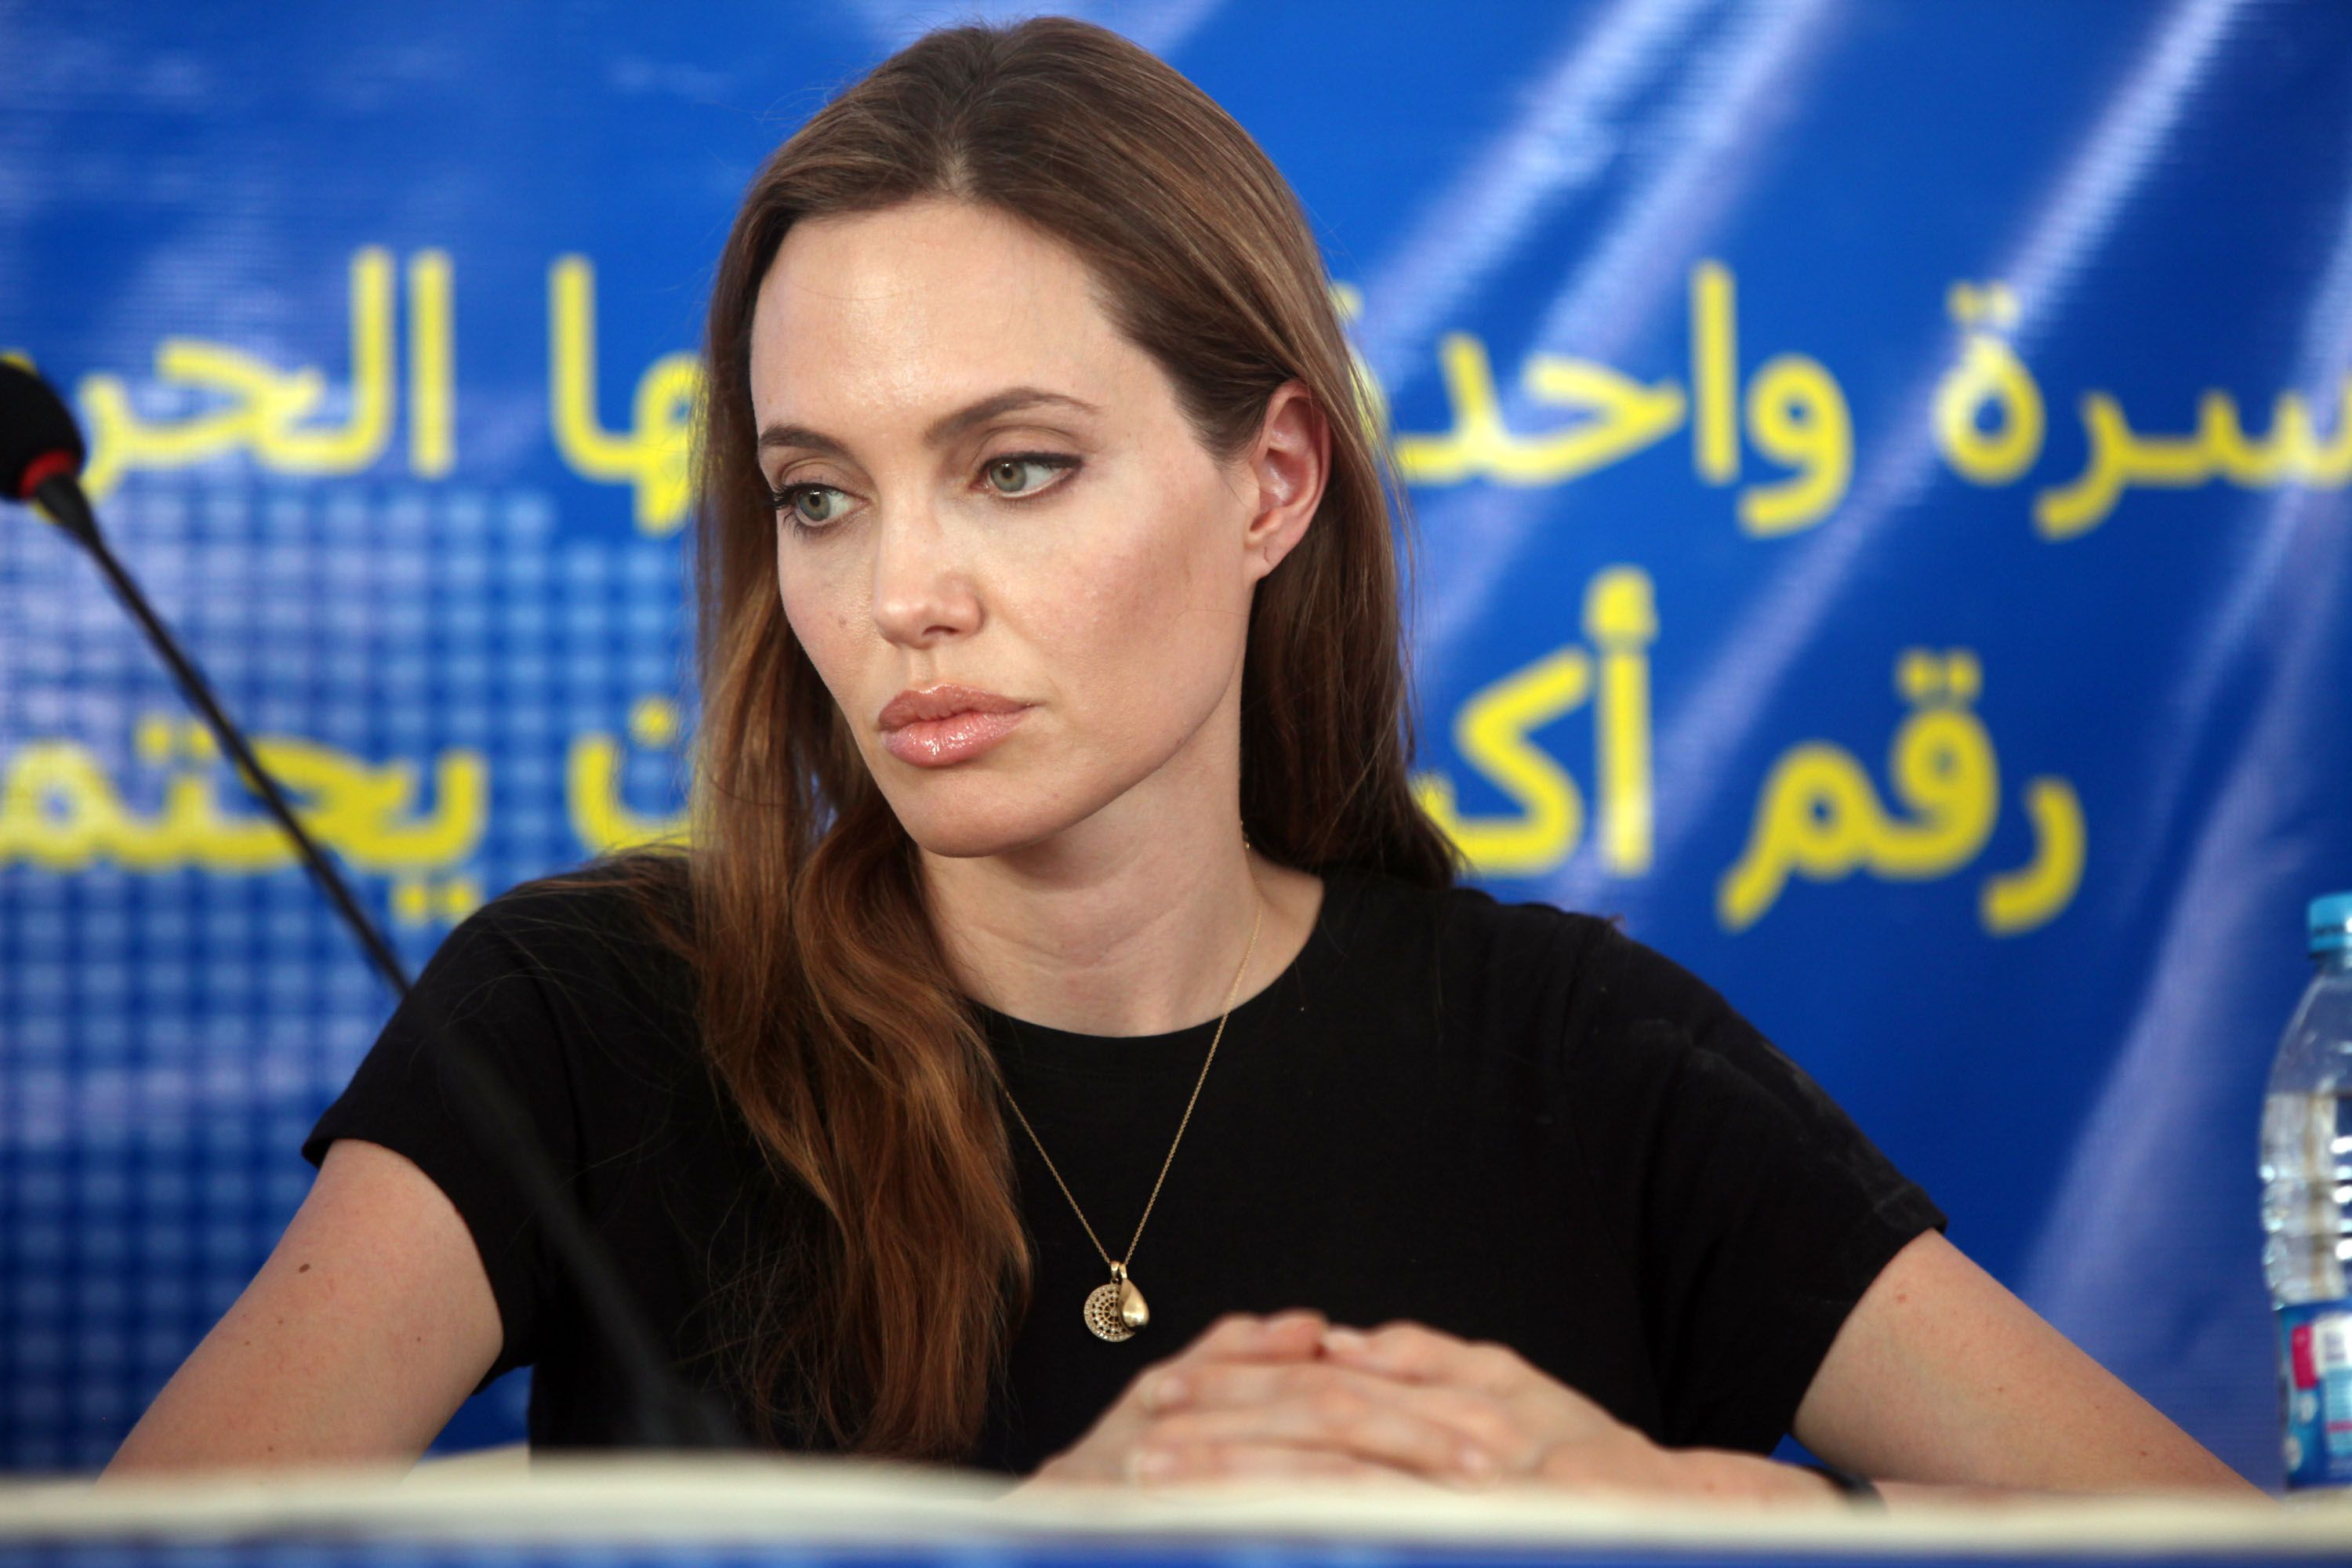 Angelina Jolie at a press conference to mark the World Refugee Day in Al-Zaatari Refugee Camp on June 20, 2013. | Photo: Getty Images